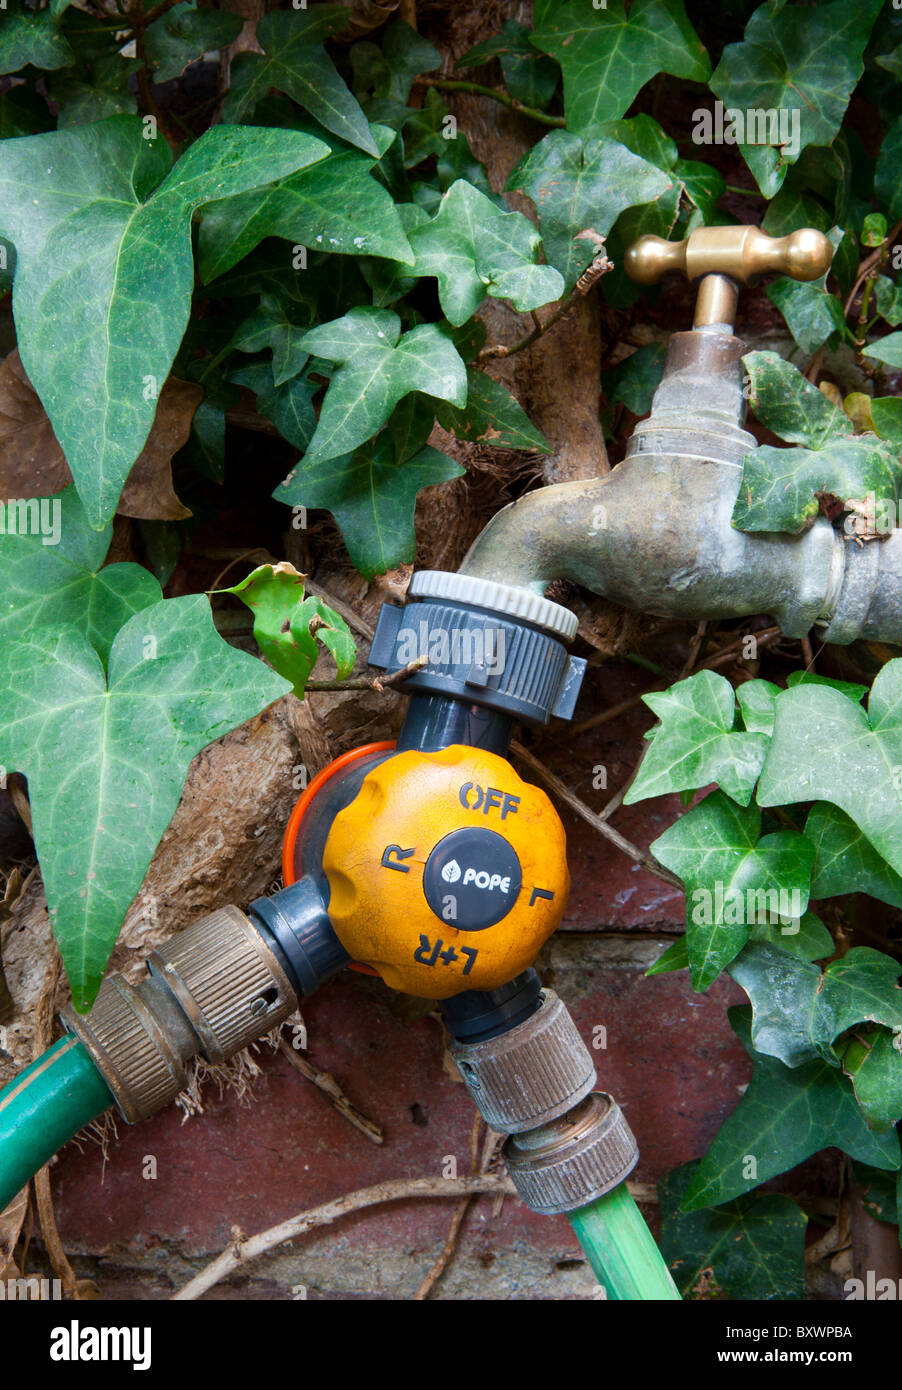 Two way tap splitter connecting an outdoor tap to two hosepipes. - Stock Image